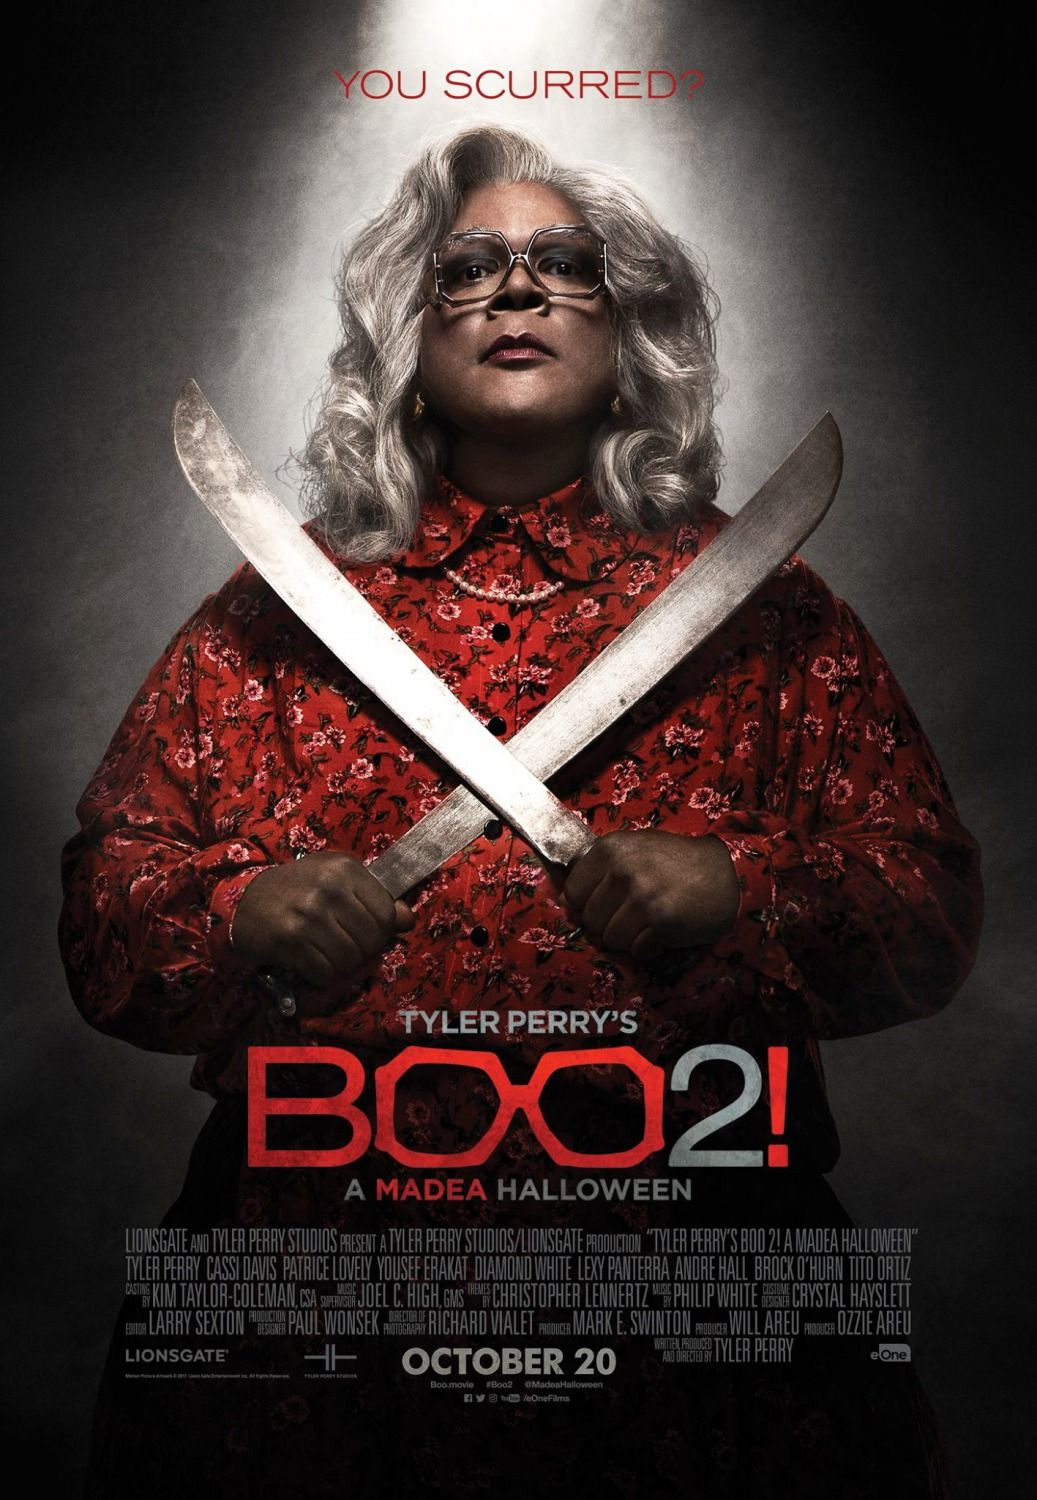 Return to the main poster page for Boo! A Madea Halloween